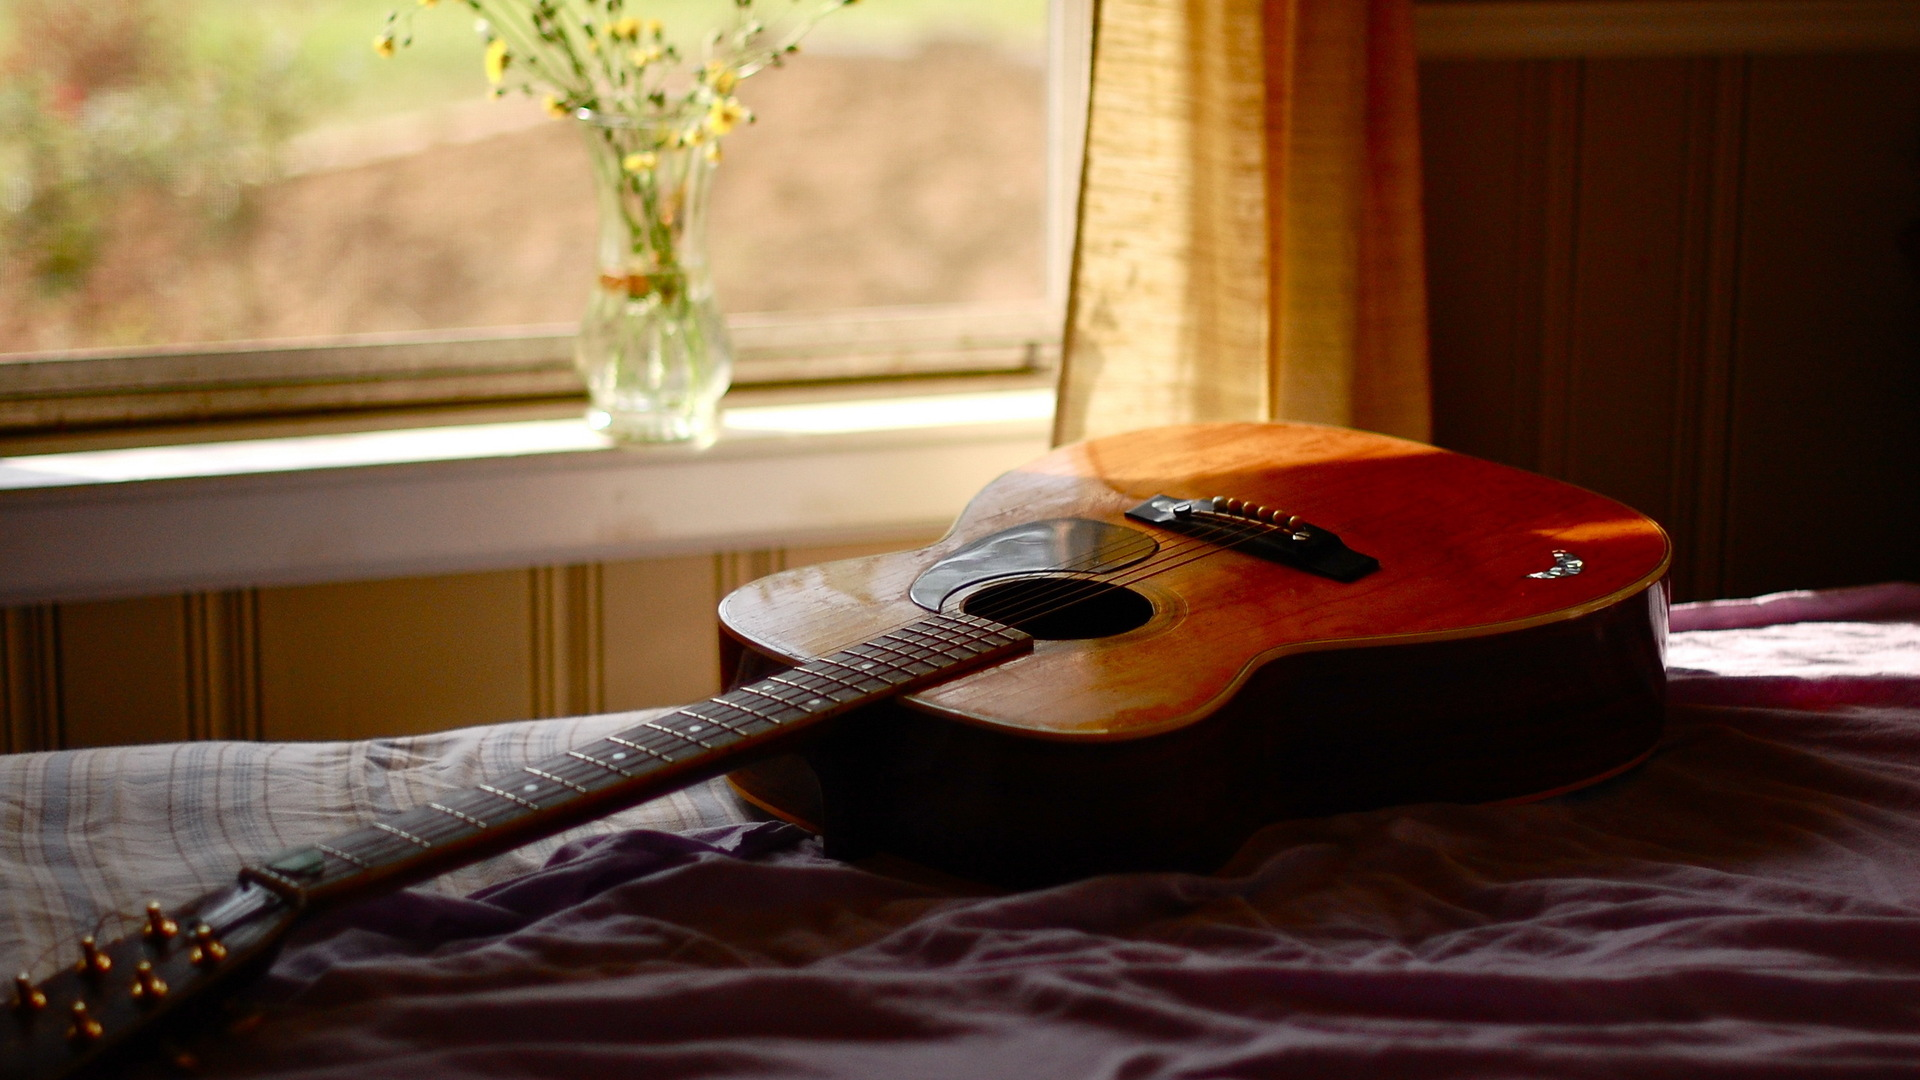 Guitar HD Wallpaper 58790 1920x1080 px HDWallSourcecom